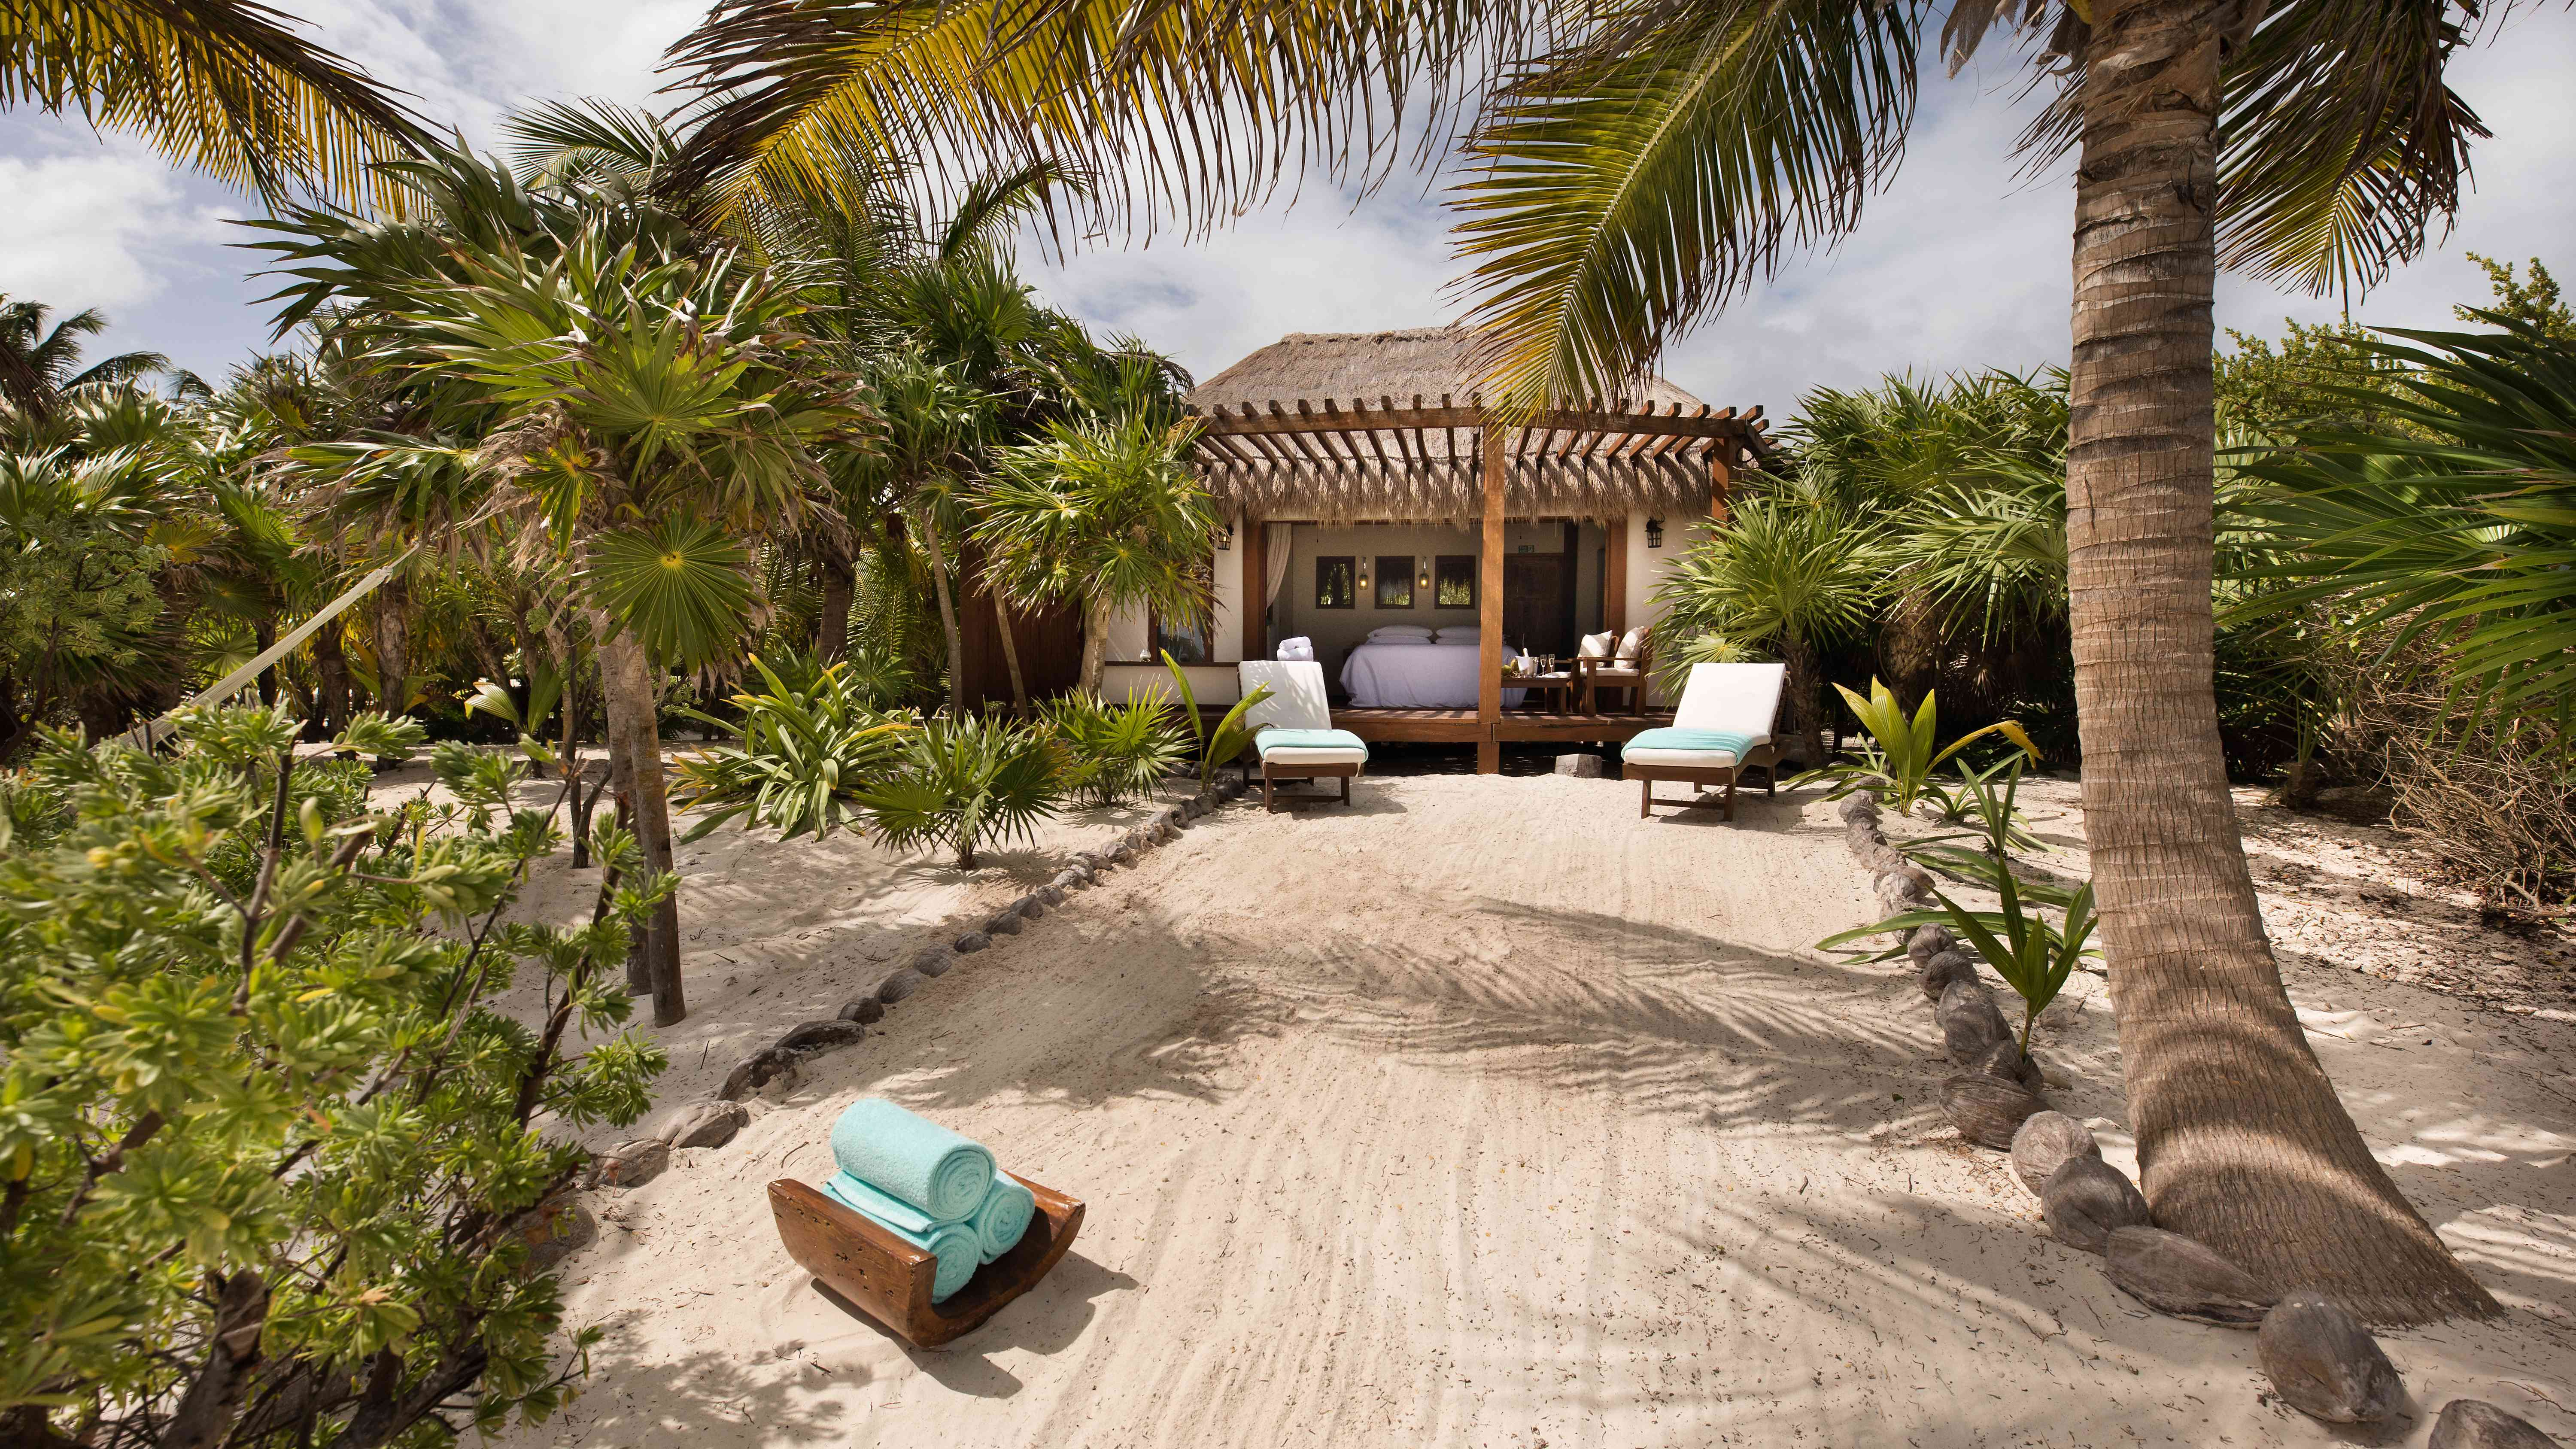 Bungalow on a beach